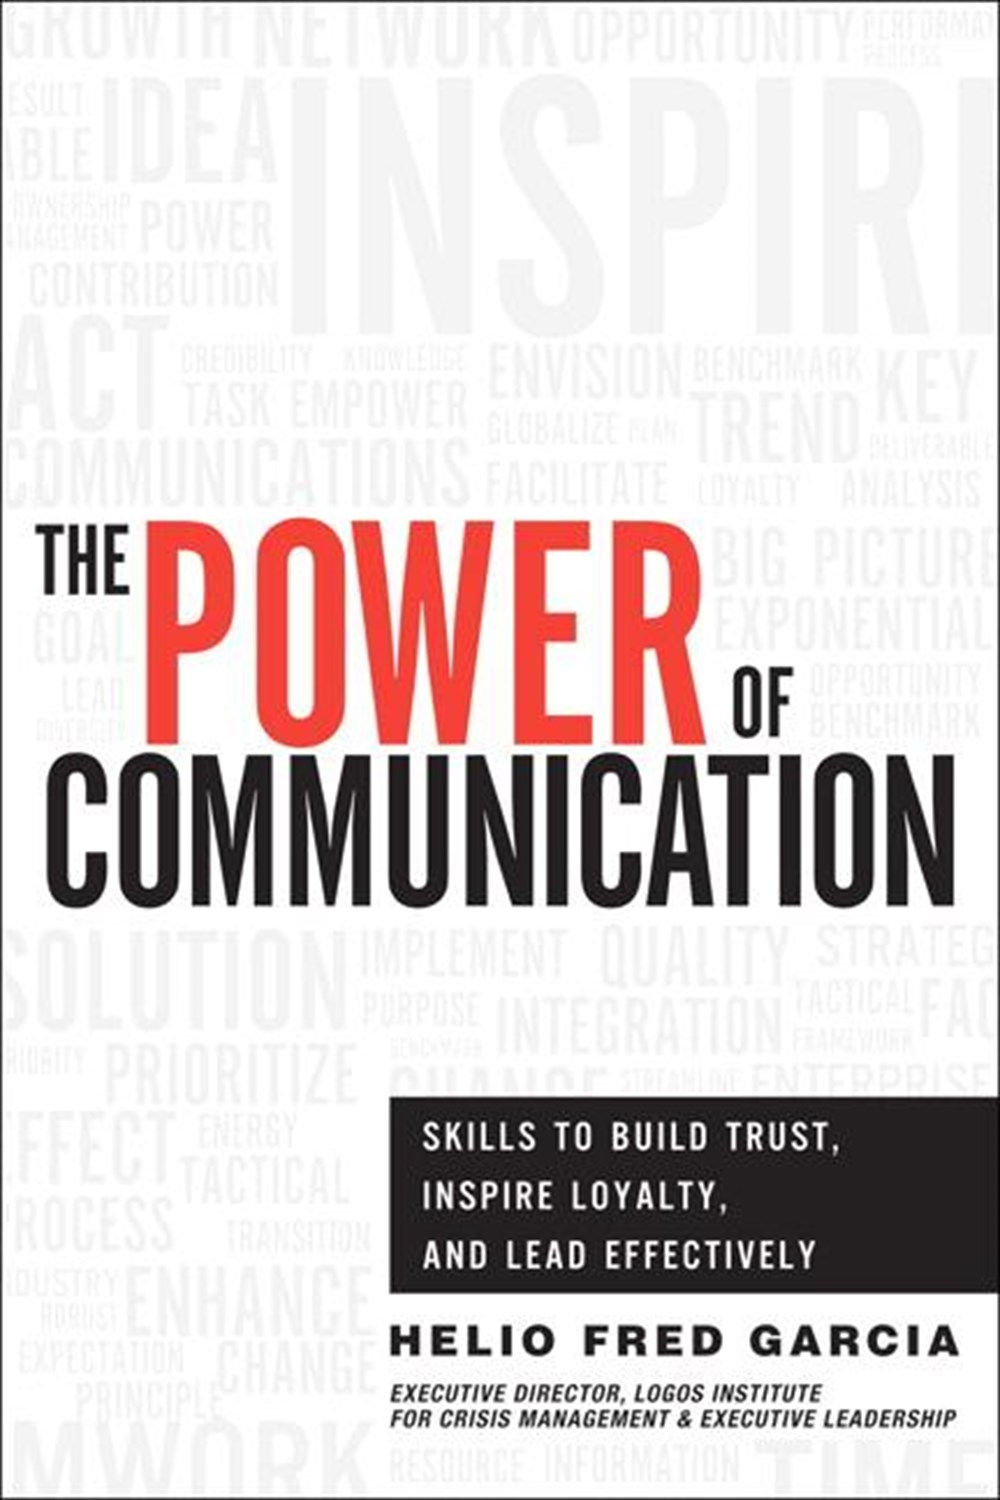 Power of Communication Skills to Build Trust, Inspire Loyalty, and Lead Effectively